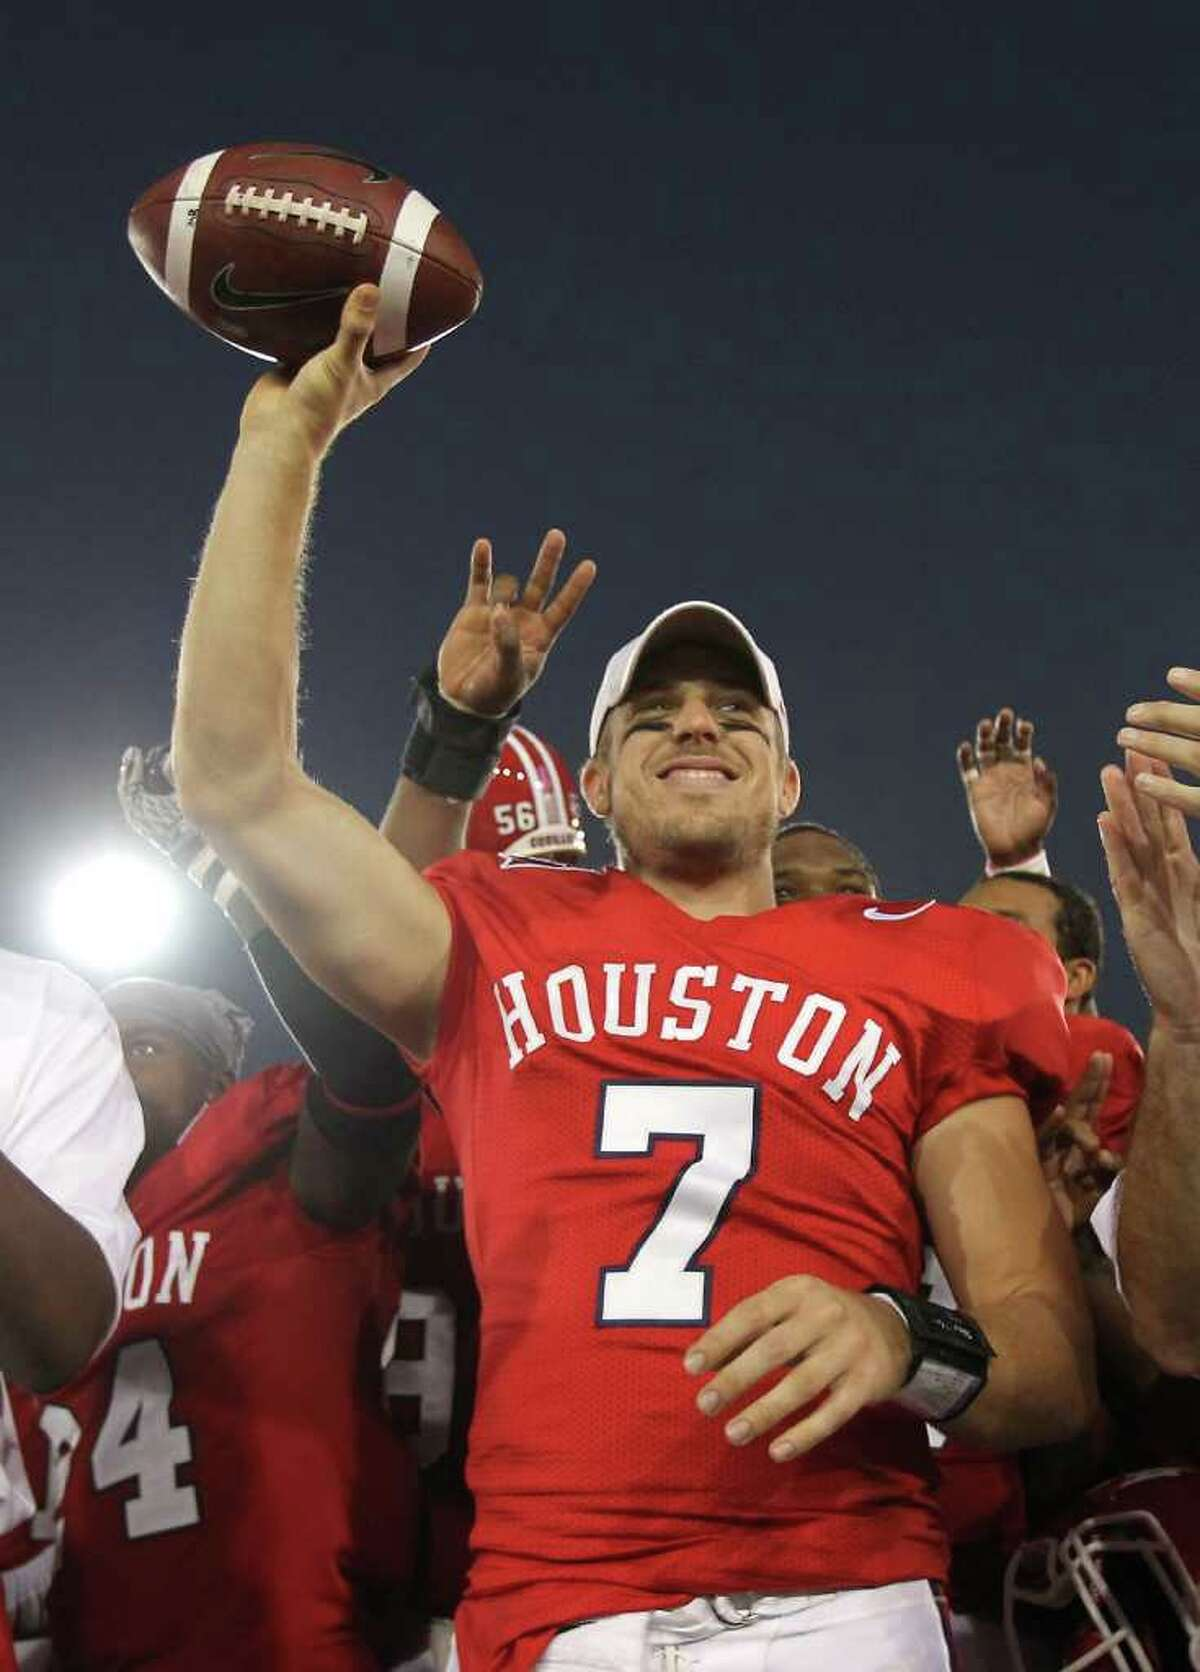 University of Houston quarterback Case Keenum (7) holds up a game ball for becoming the NCAA all time leader in total offense after winning a NCAA football game against Marshall University, Saturday, Oct. 22, 2011, at Robertson Stadium in Houston.